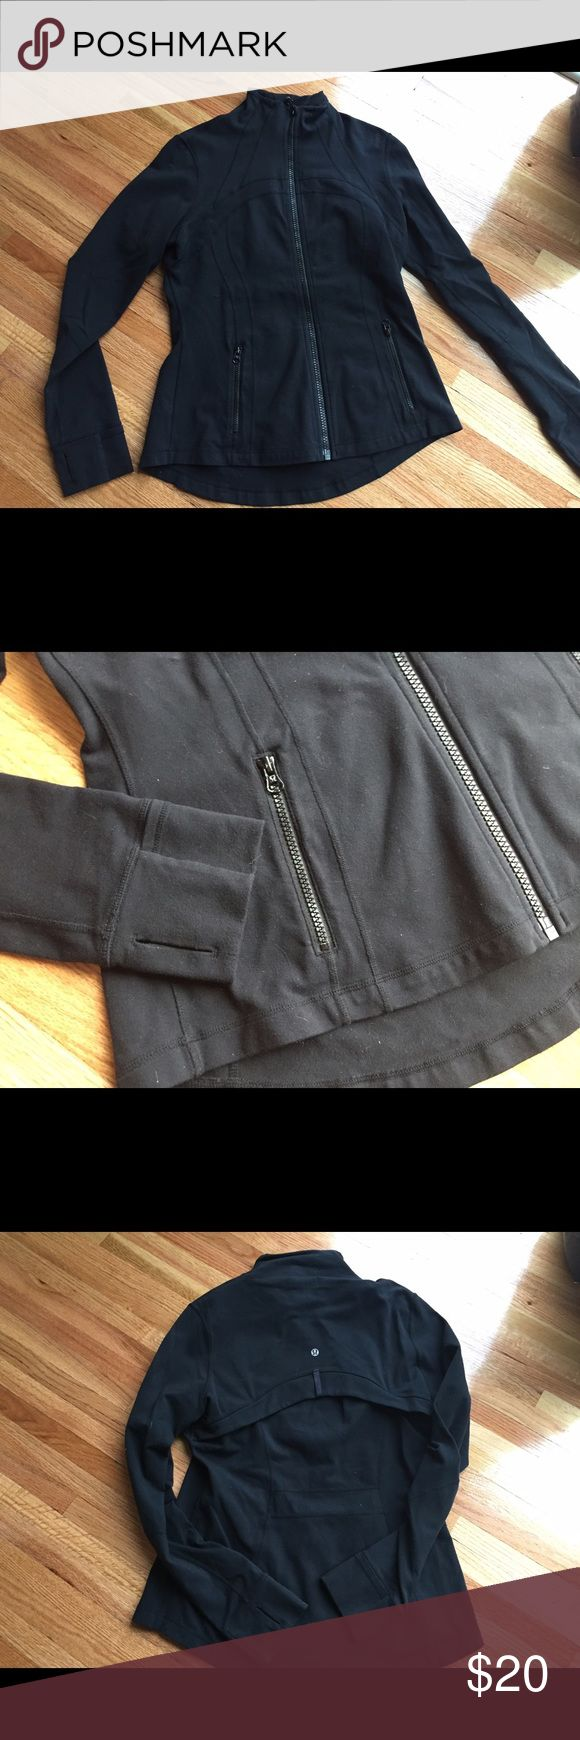 Lululemon define jacket Black jacket. Size 12. Lululemon staple jacket that everyone loves! Great condition minus the patch on the arm. Price reflects that. Low low price so if you don't care about the patch or know how to remove it then this is a GREAT price. lululemon athletica Jackets & Coats